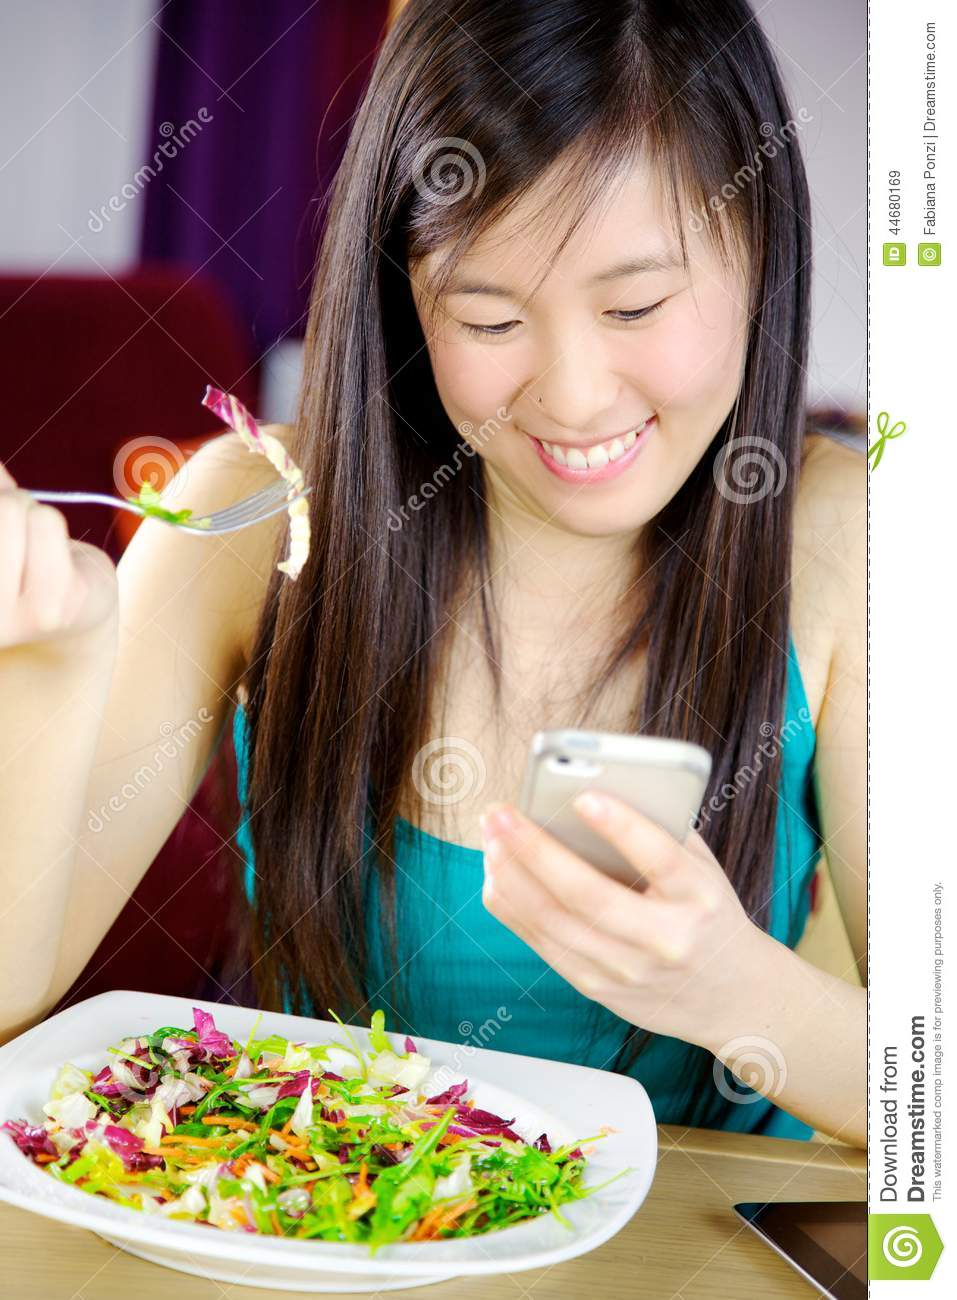 Beautiful Fun Fall Wedding Inspiration: I Can't Stop Texting Stock Image. Image Of Food, Texting